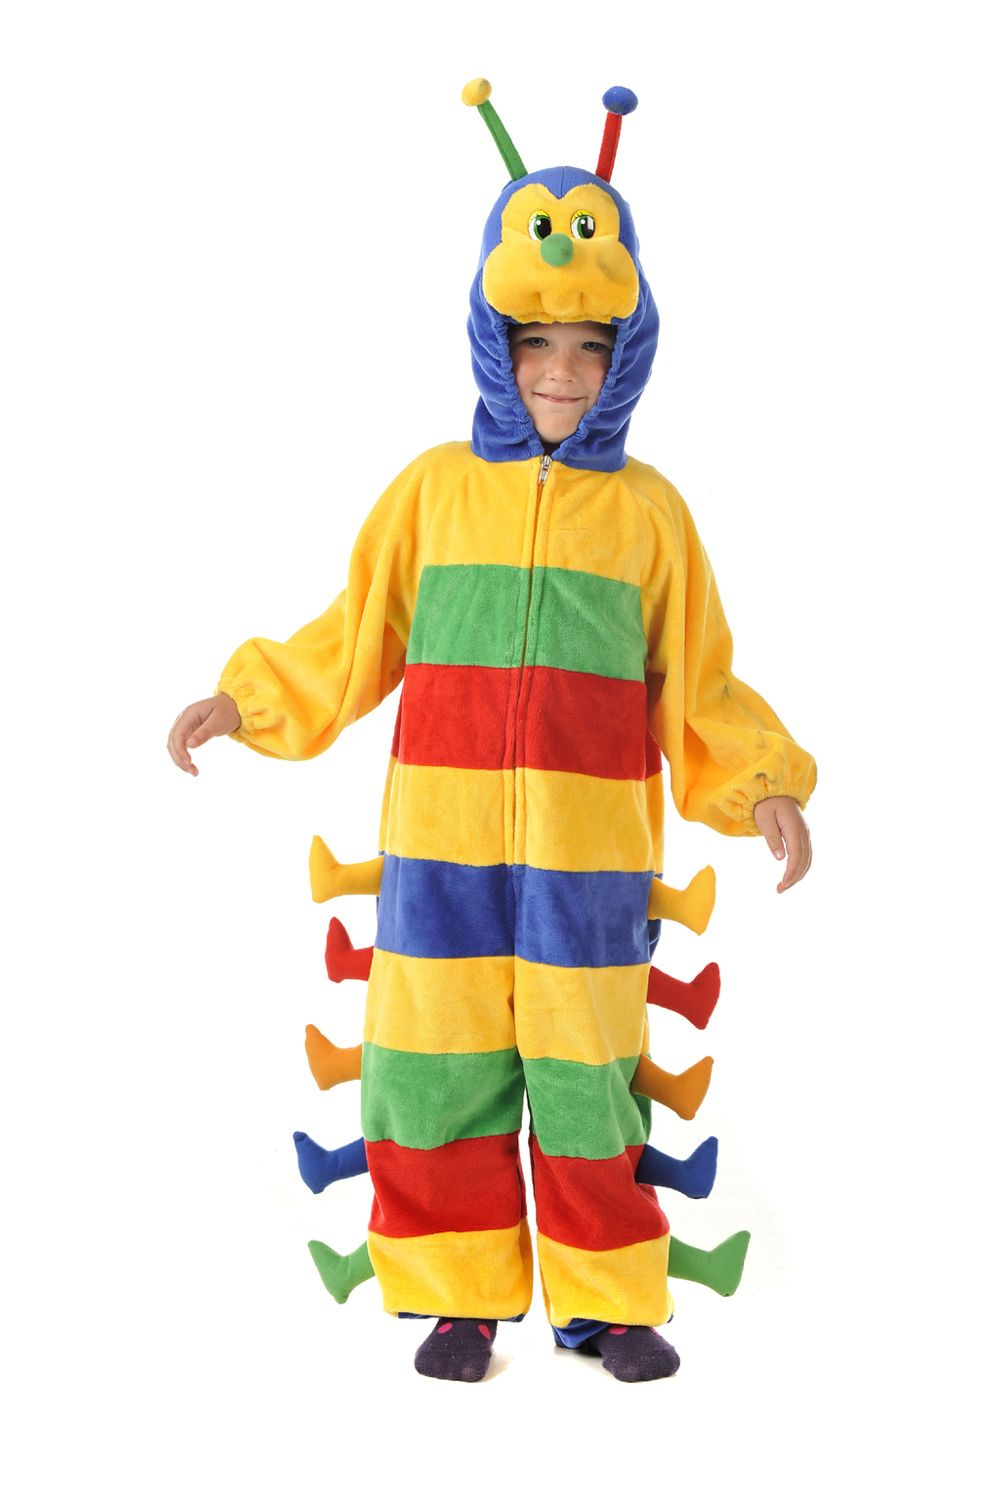 Buy and Rent childrens fancy dress costumes for kids online across India. Largest boys and girls costumes range for School Fancy Dress Competitions & children school Annual days. Get Fancy Dress Ideas as per fancy dress themes for toddlers & babies.